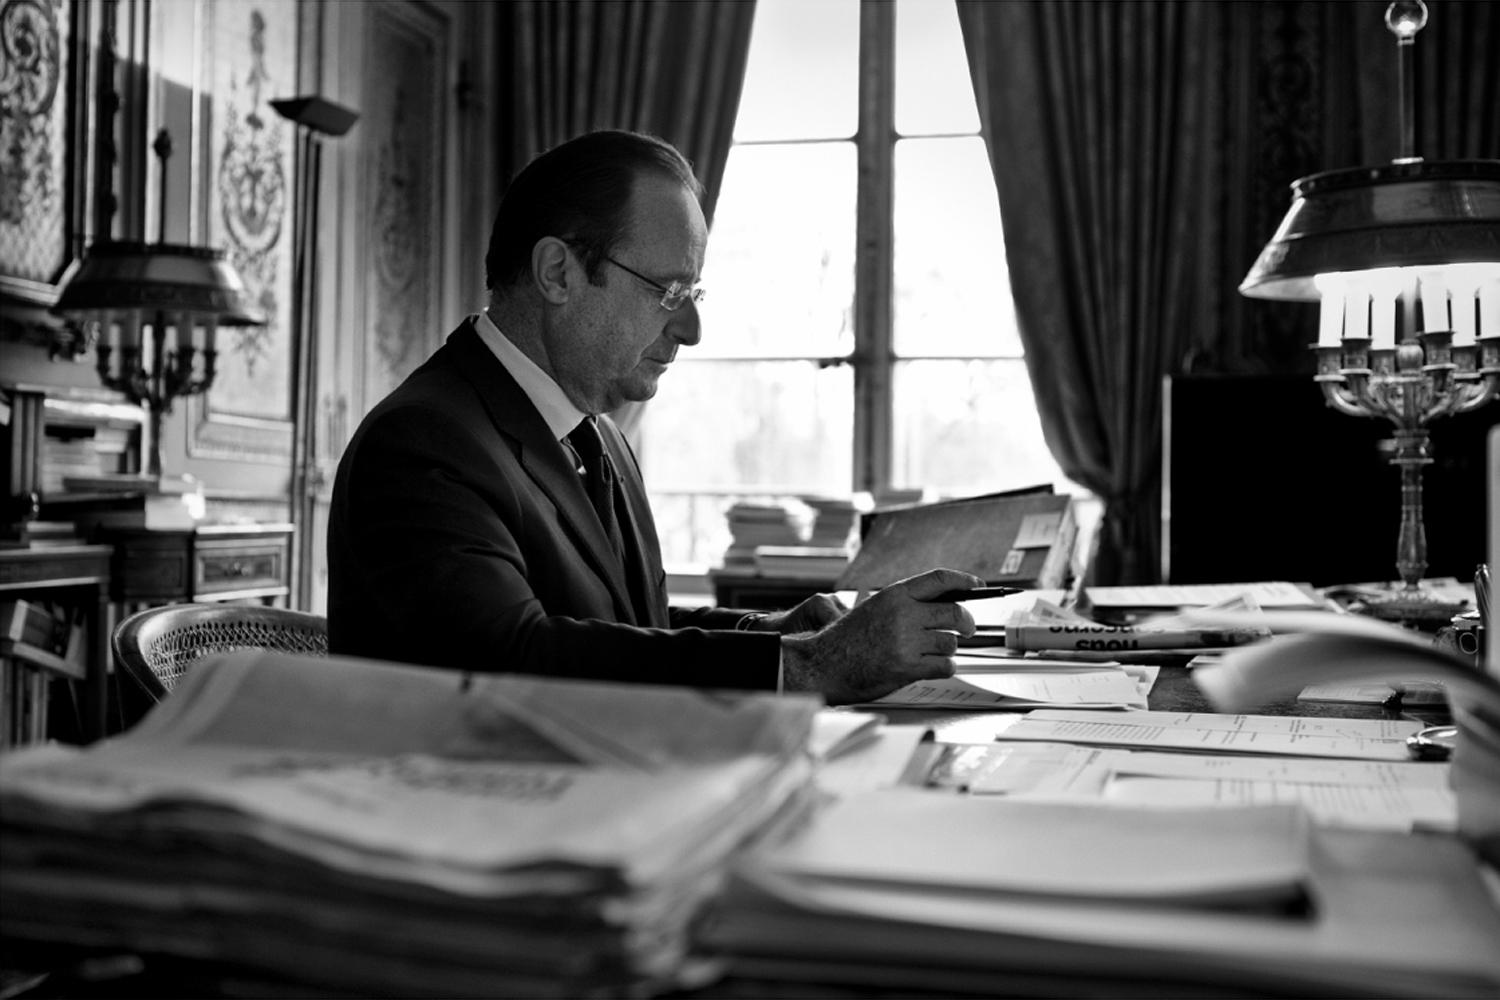 January 2014. President François Hollande in his office at the presidential Élysée Palace in Paris.